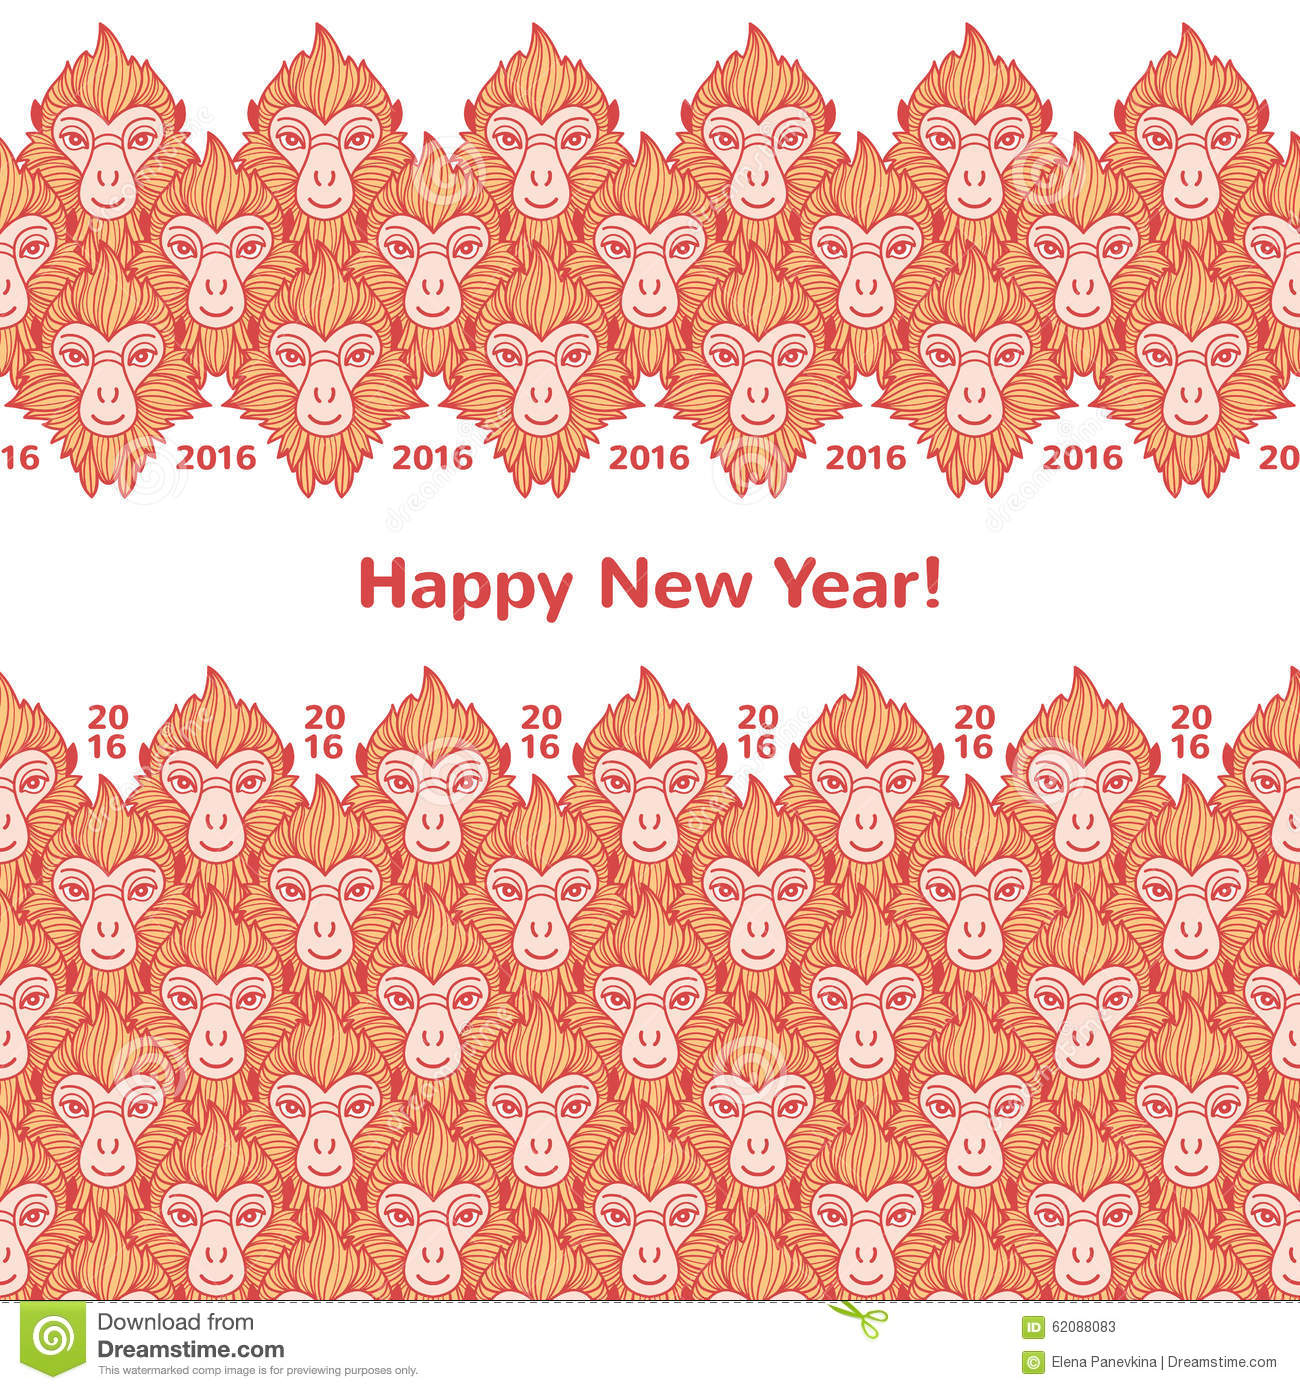 monkey heads new year horizontal borders with greetings